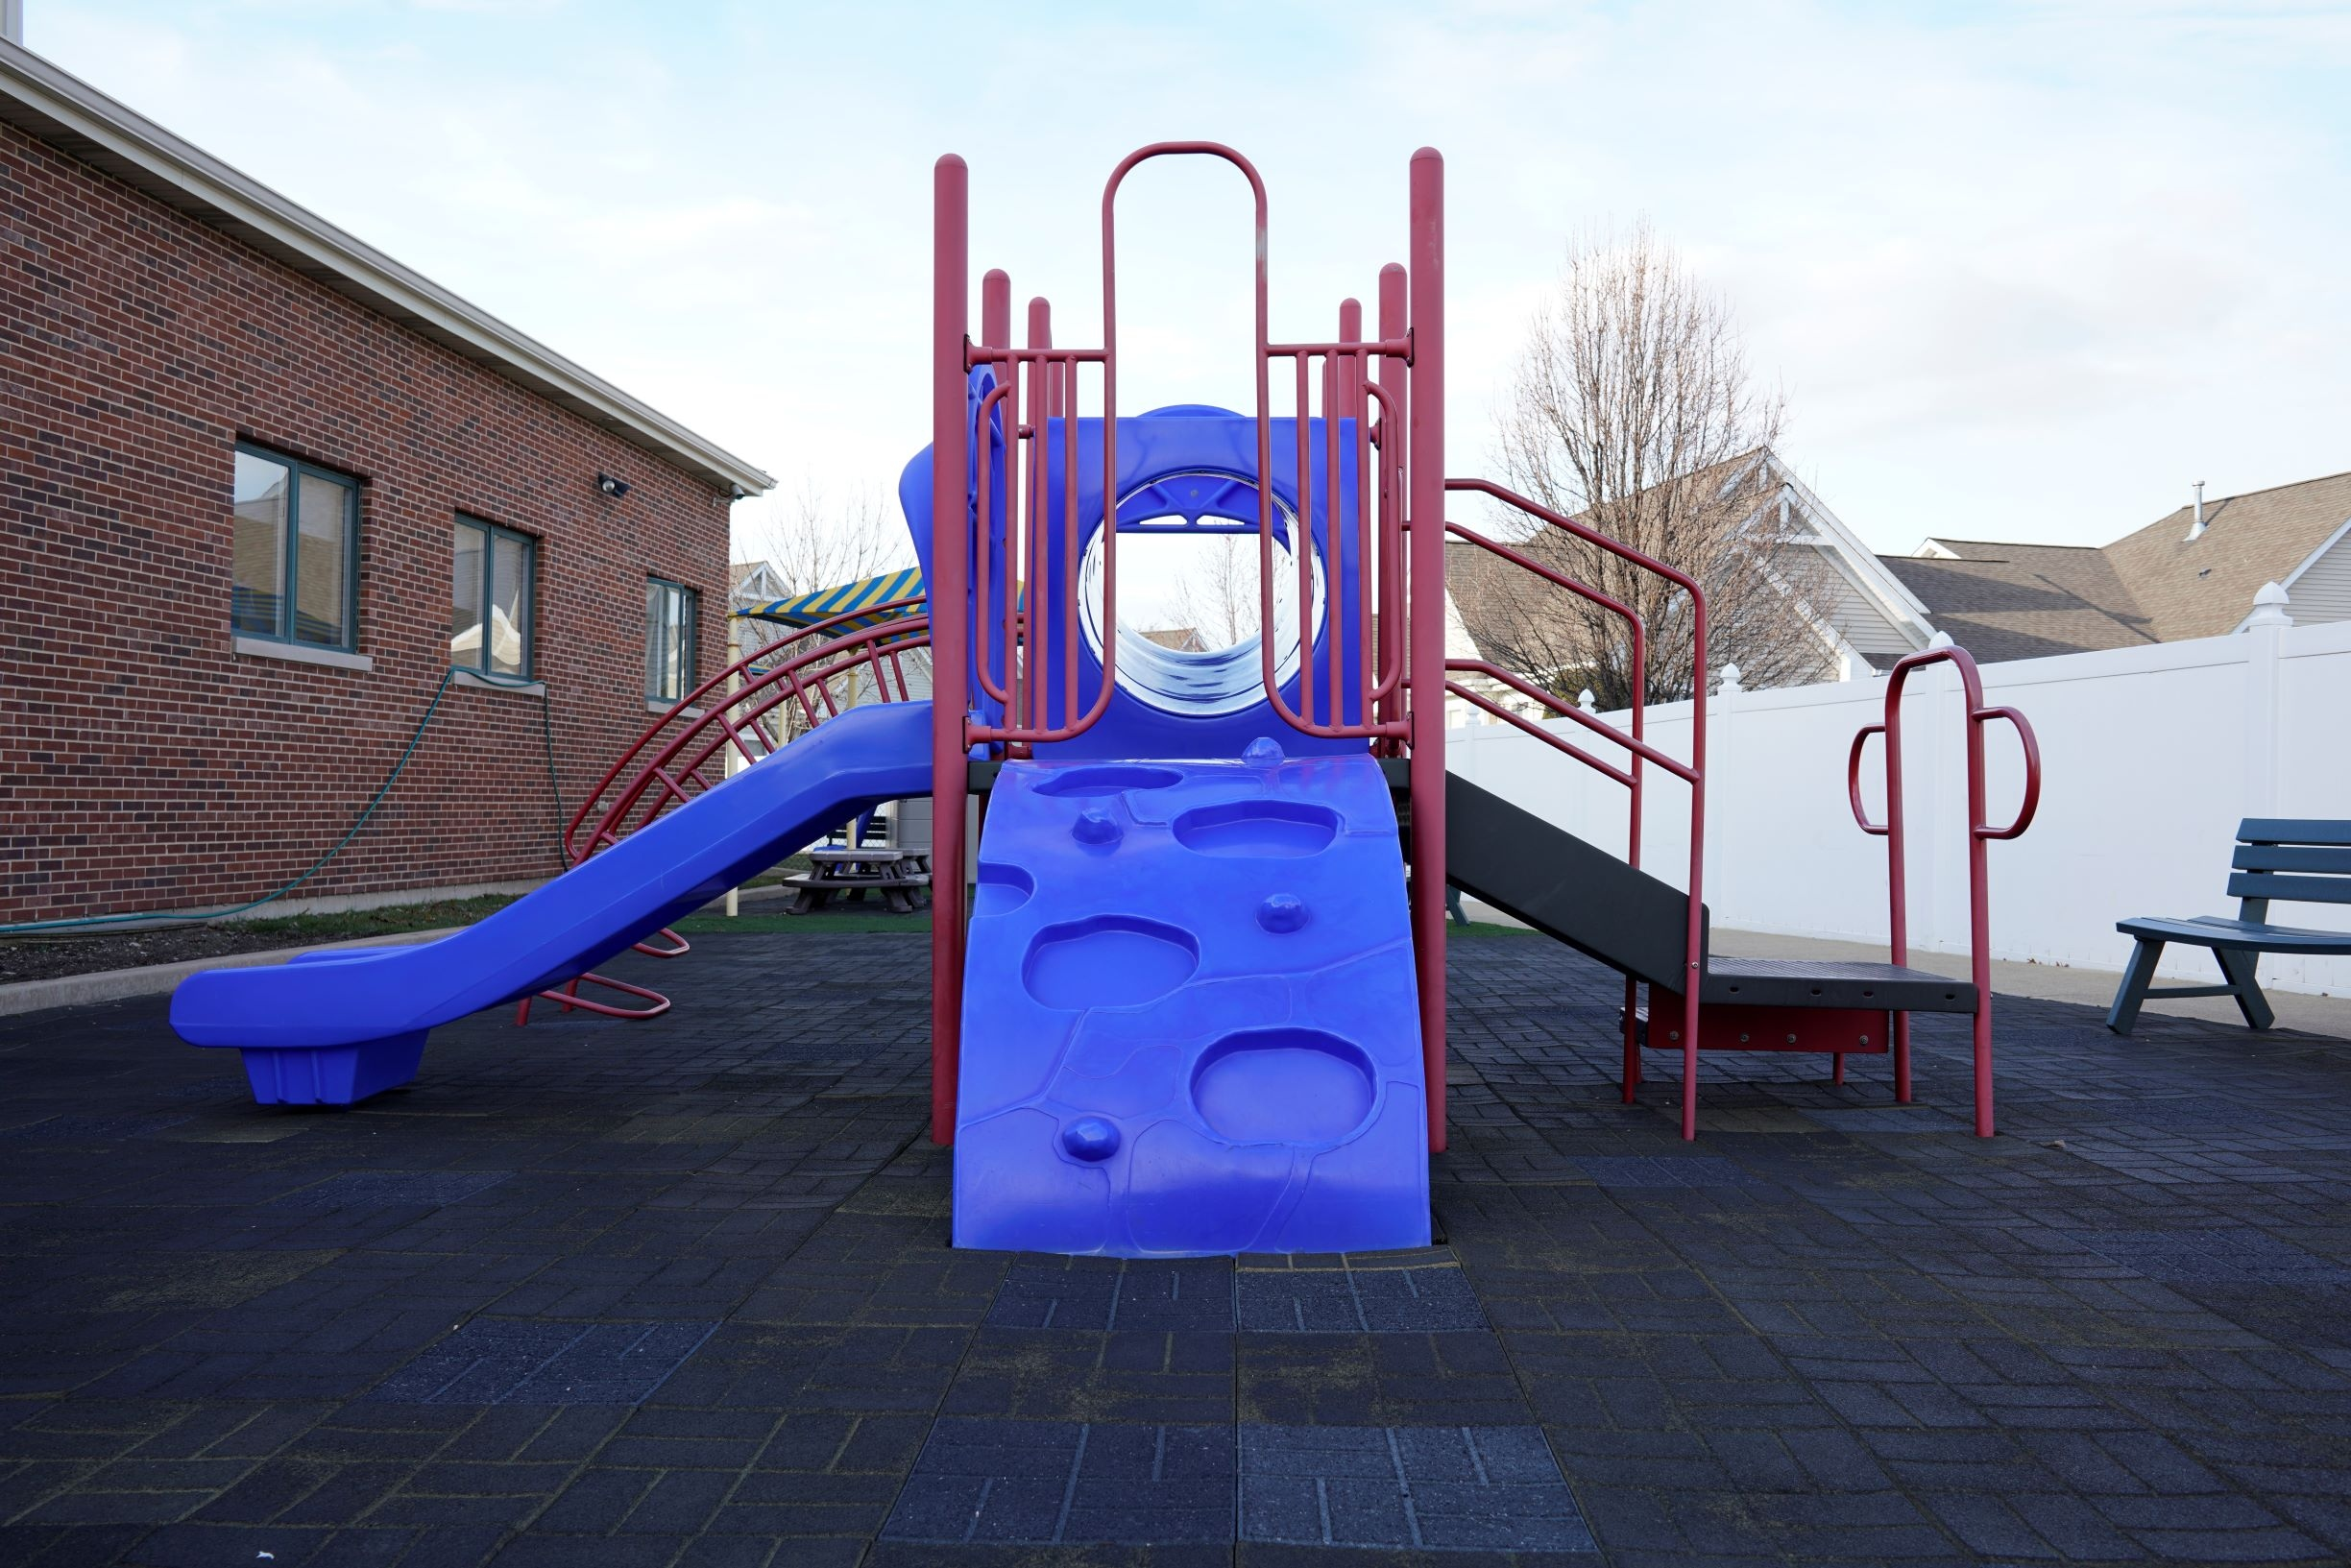 front view of playground